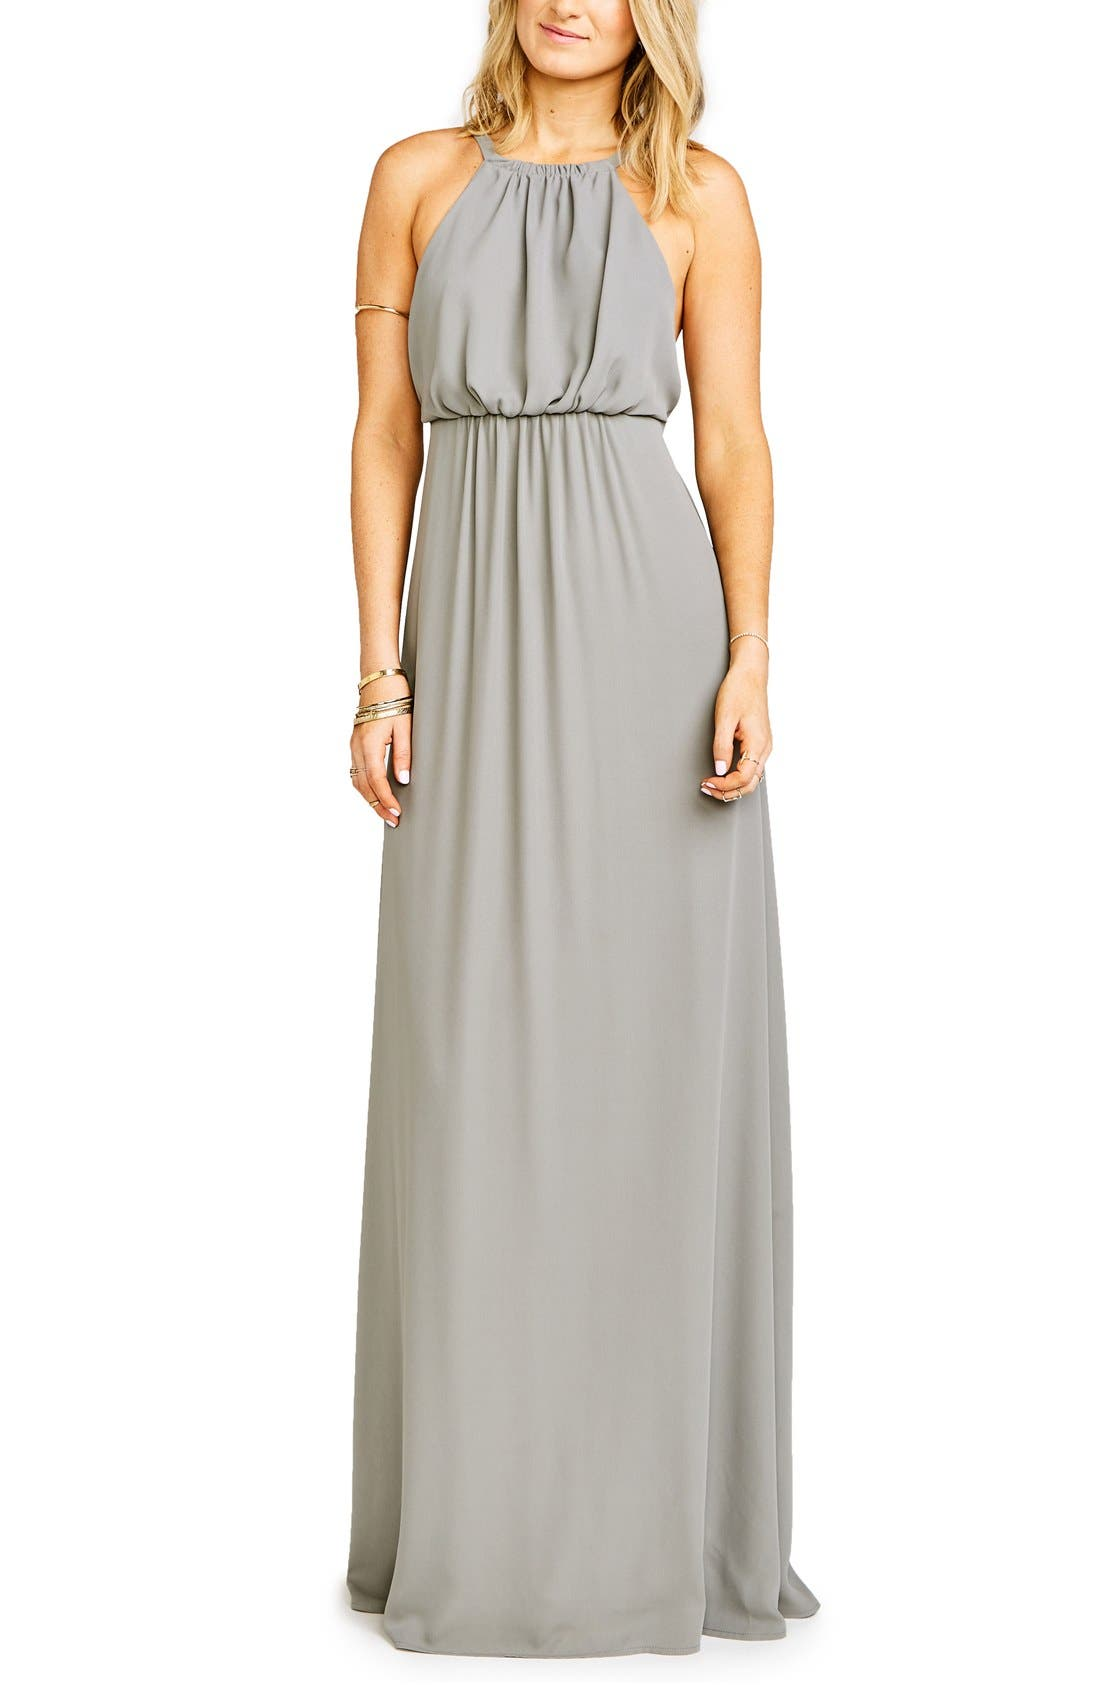 Amanda Open Back Blouson Gown,                             Main thumbnail 2, color,